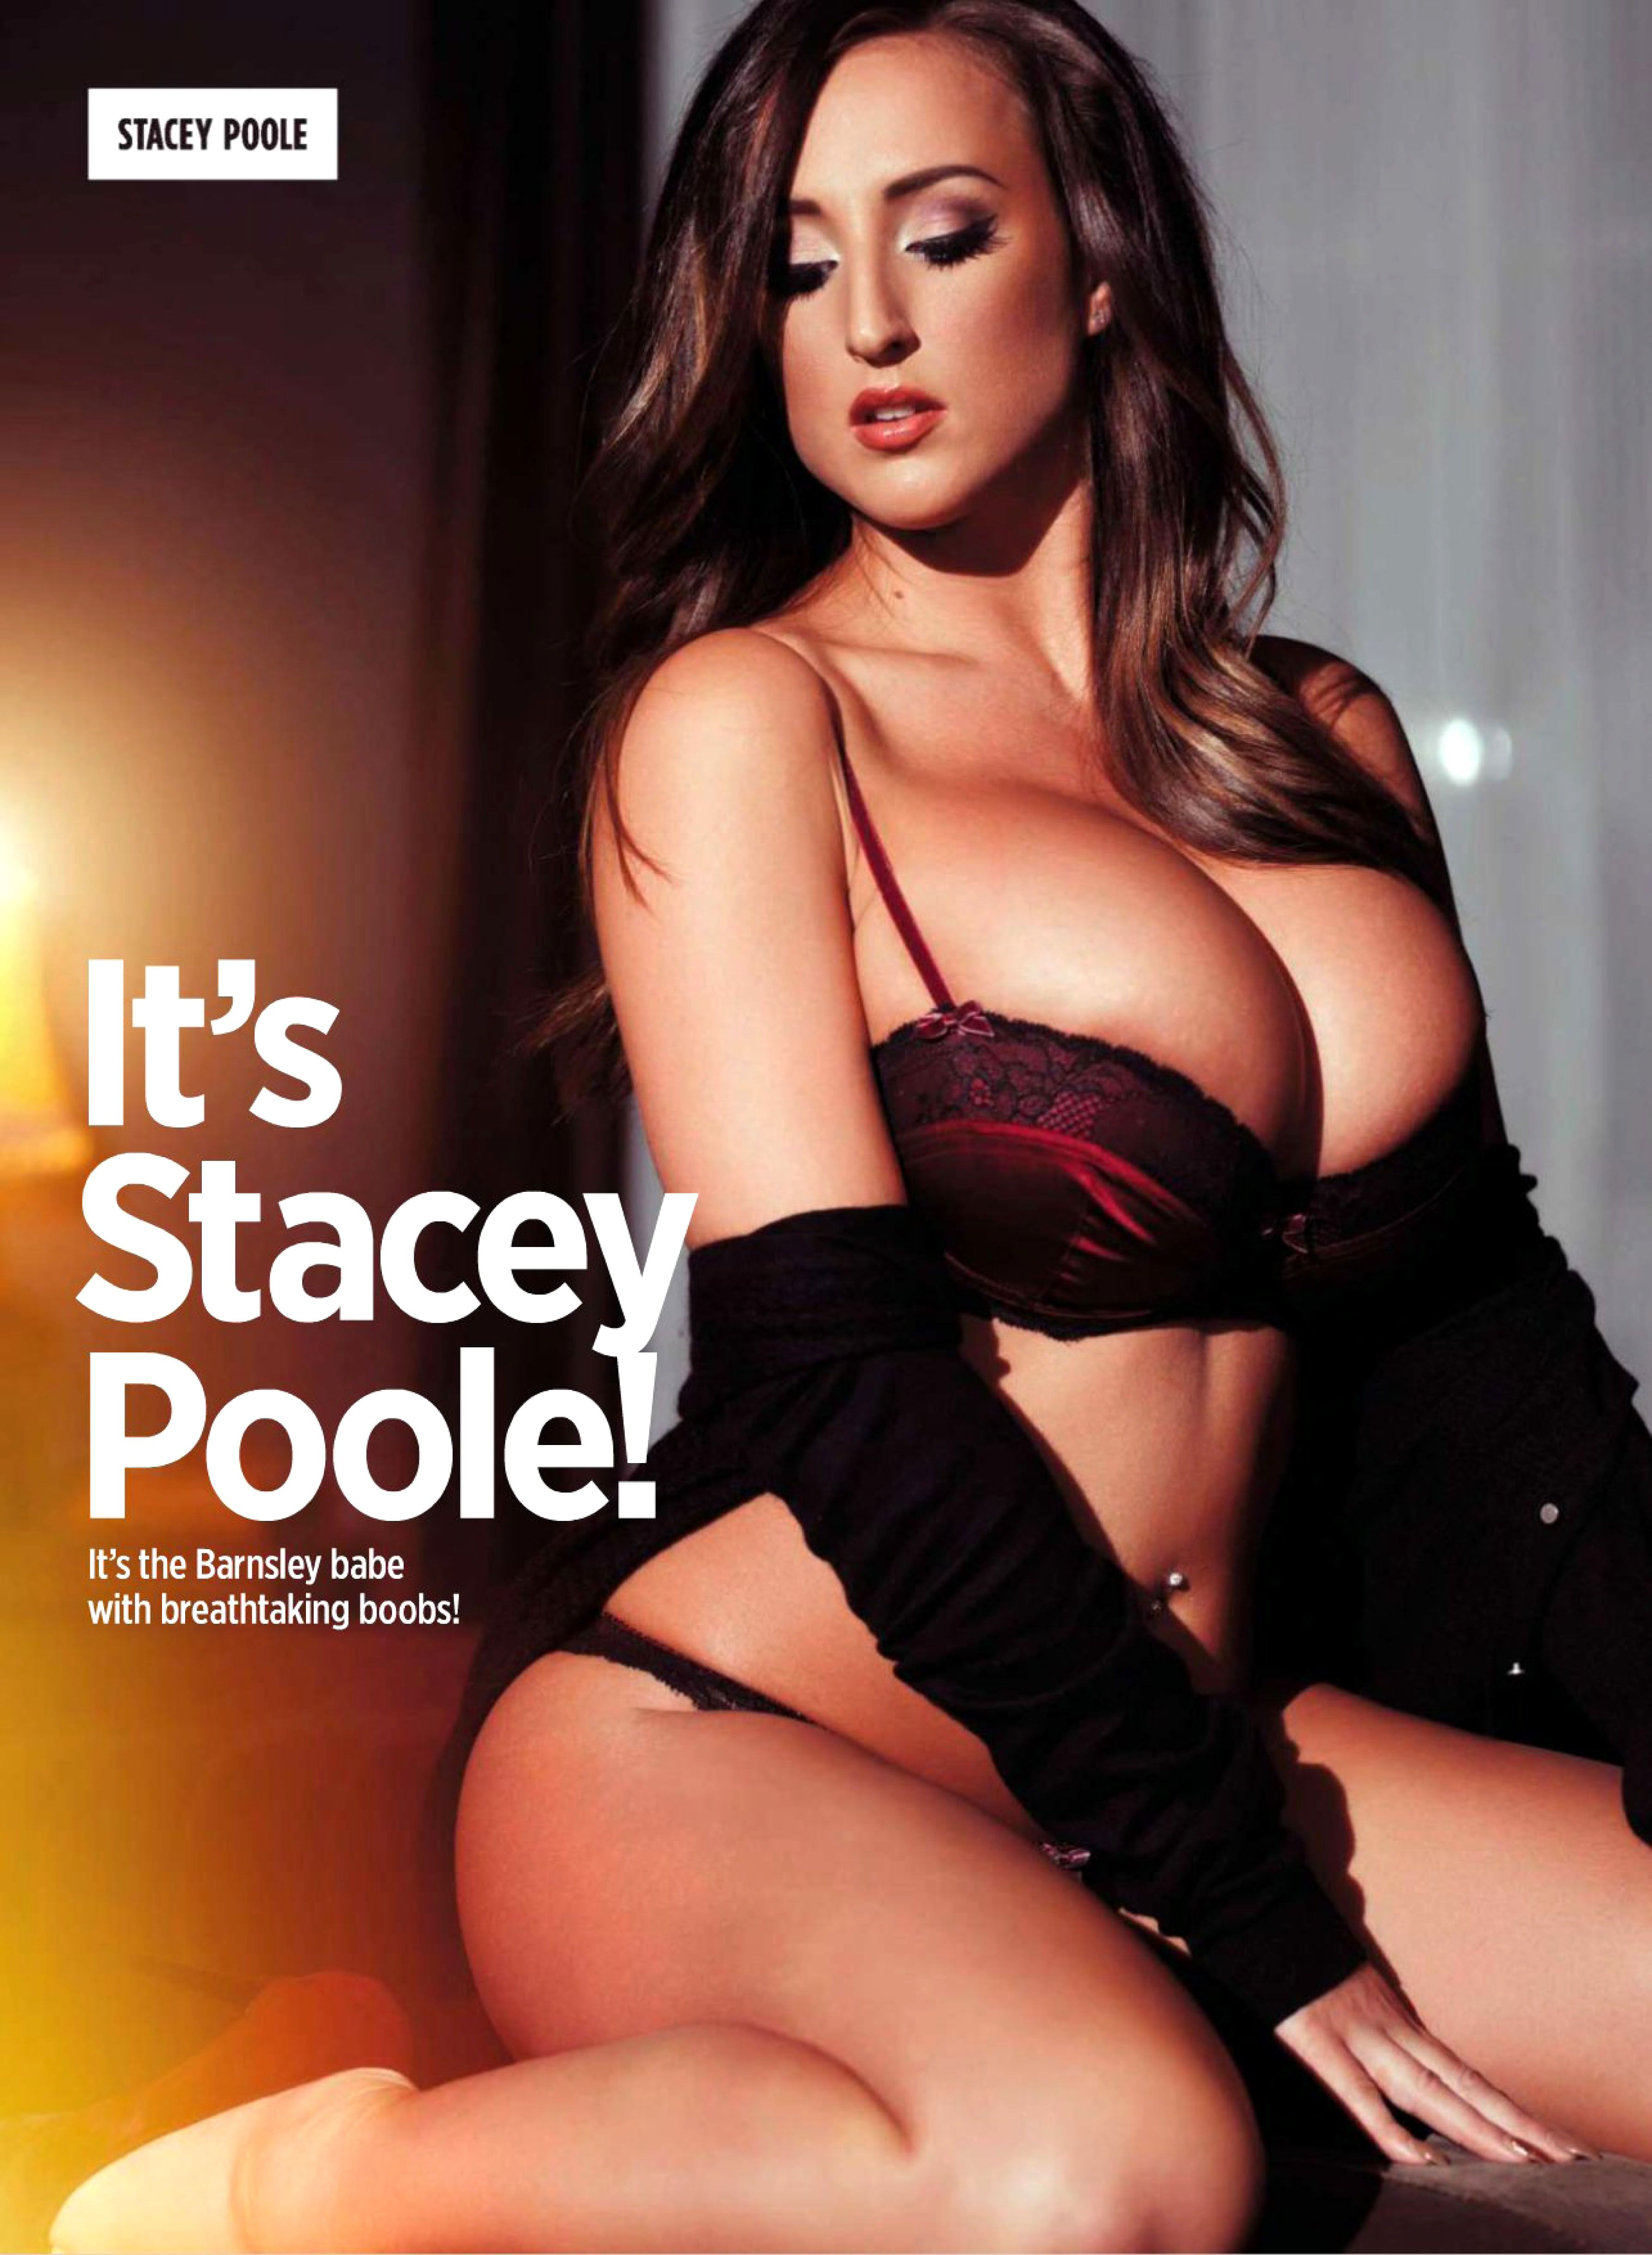 Holly peers british natural woman lunch box